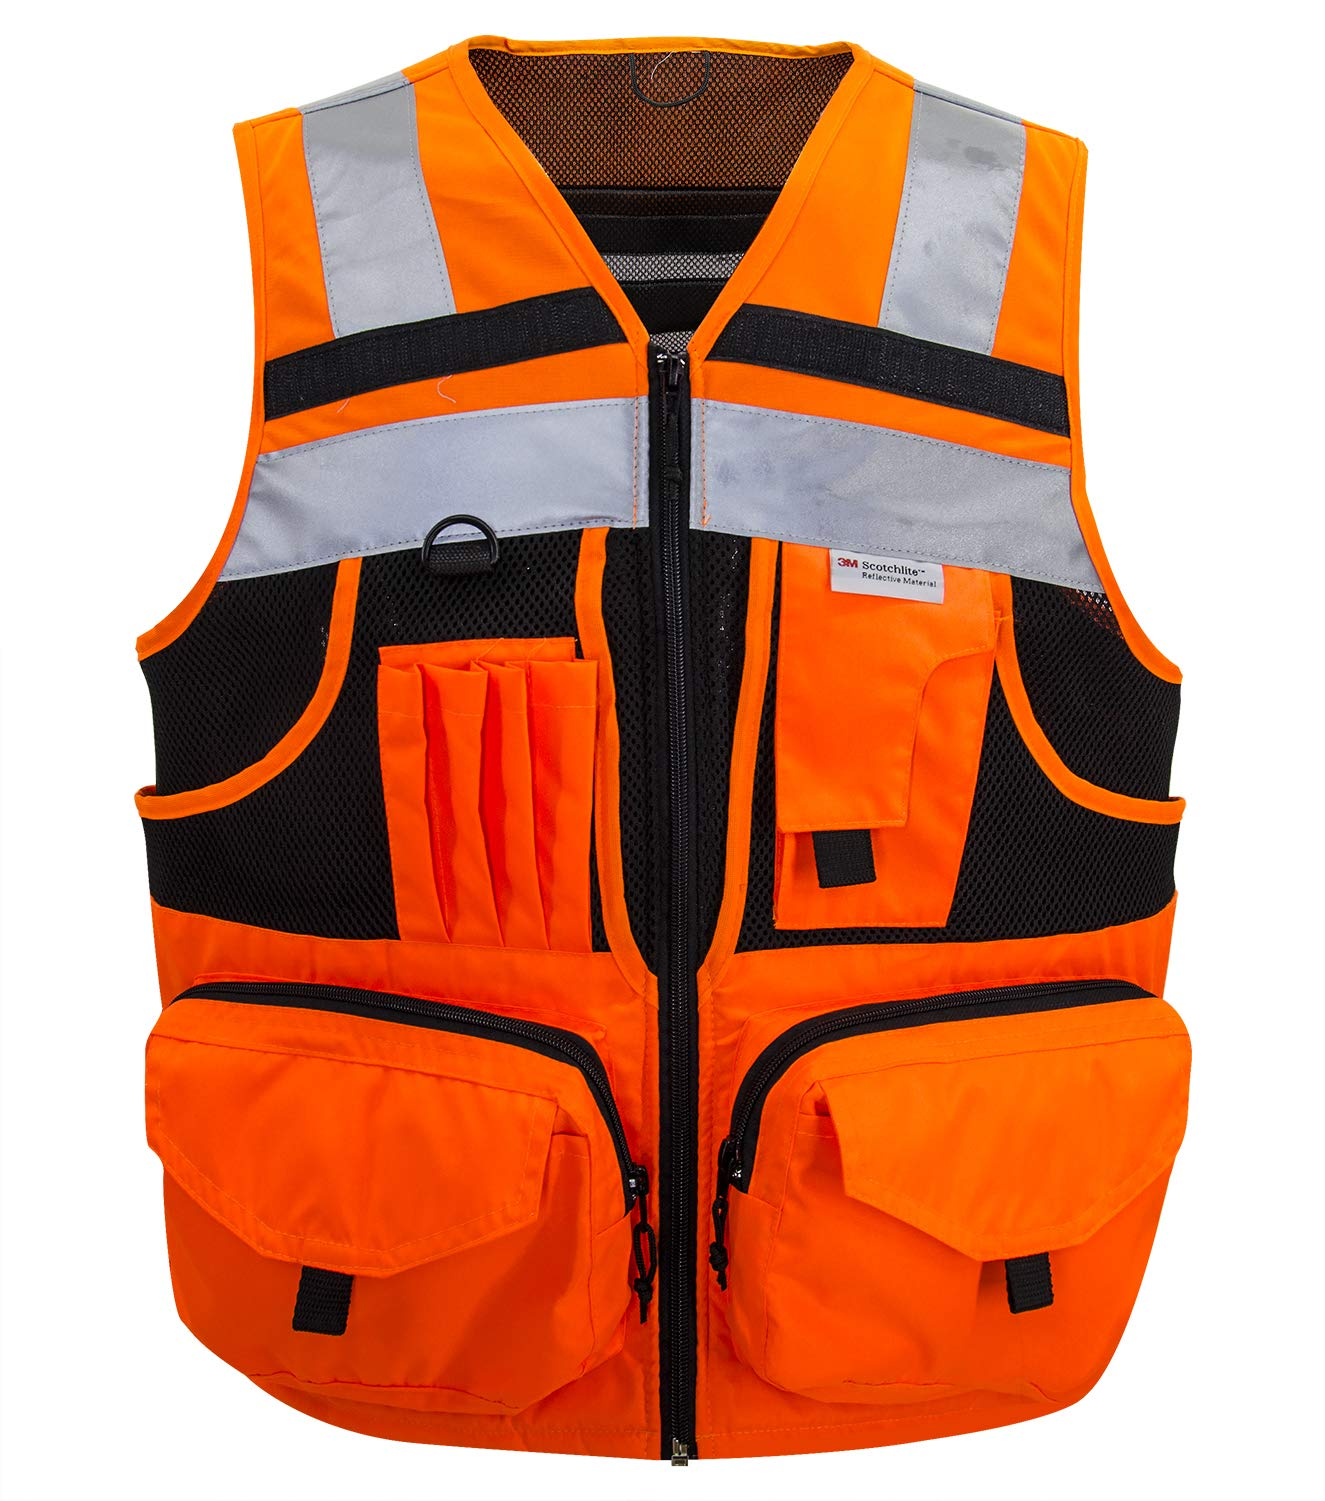 3M Reflective stripes Safety Vest Hi-vis Orange knitted Vest with 10 pockets Bright Construction Workwear for men and women. (2XL)